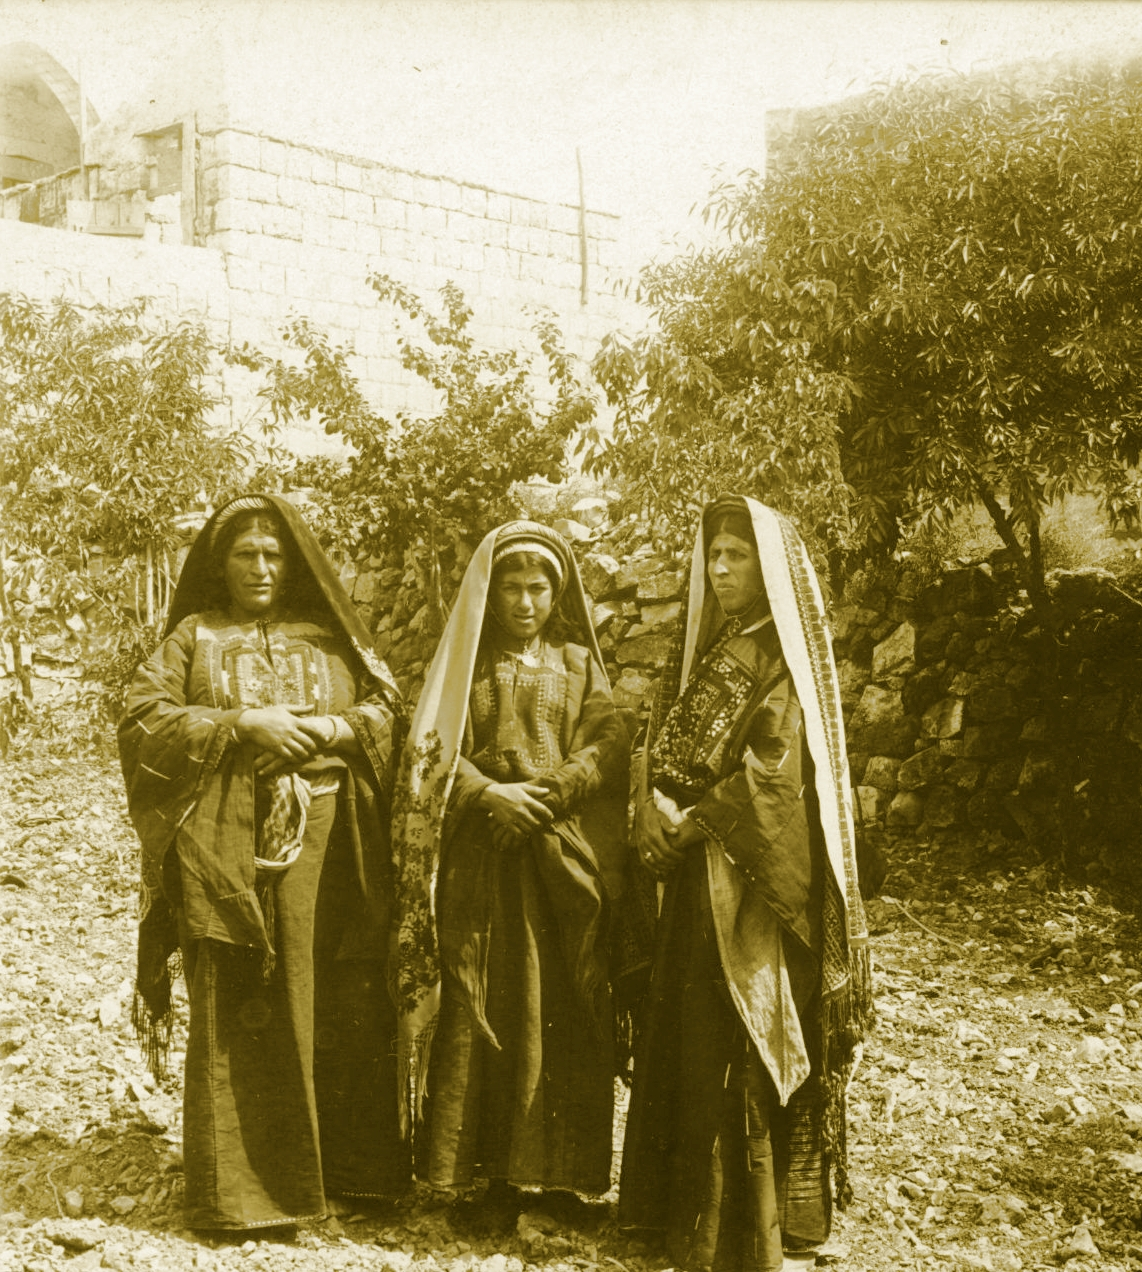 Ramallah - رام الله : RAMALLAH - Women of the Ramallah area in traditional costumes, circa 1890s (Per Reem Ackall)